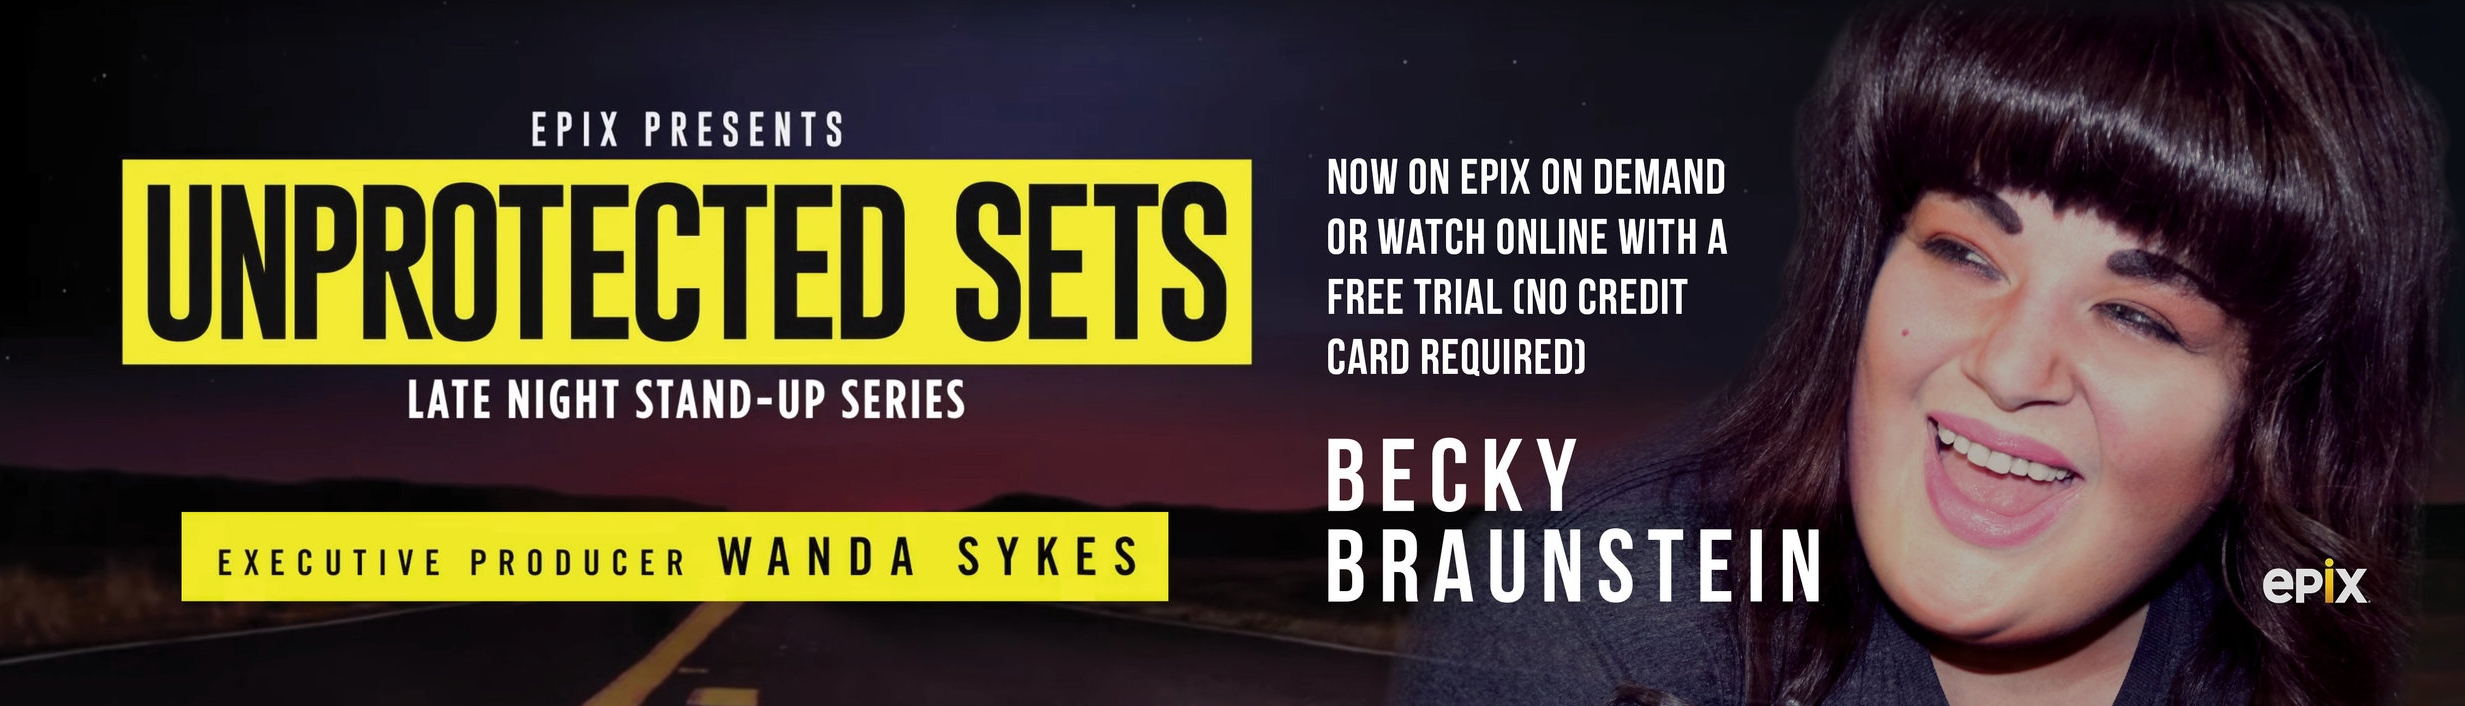 Click the image to    watch my half-hour special online    with a free trial (no credit card / payment info required!) at the EPIX website!